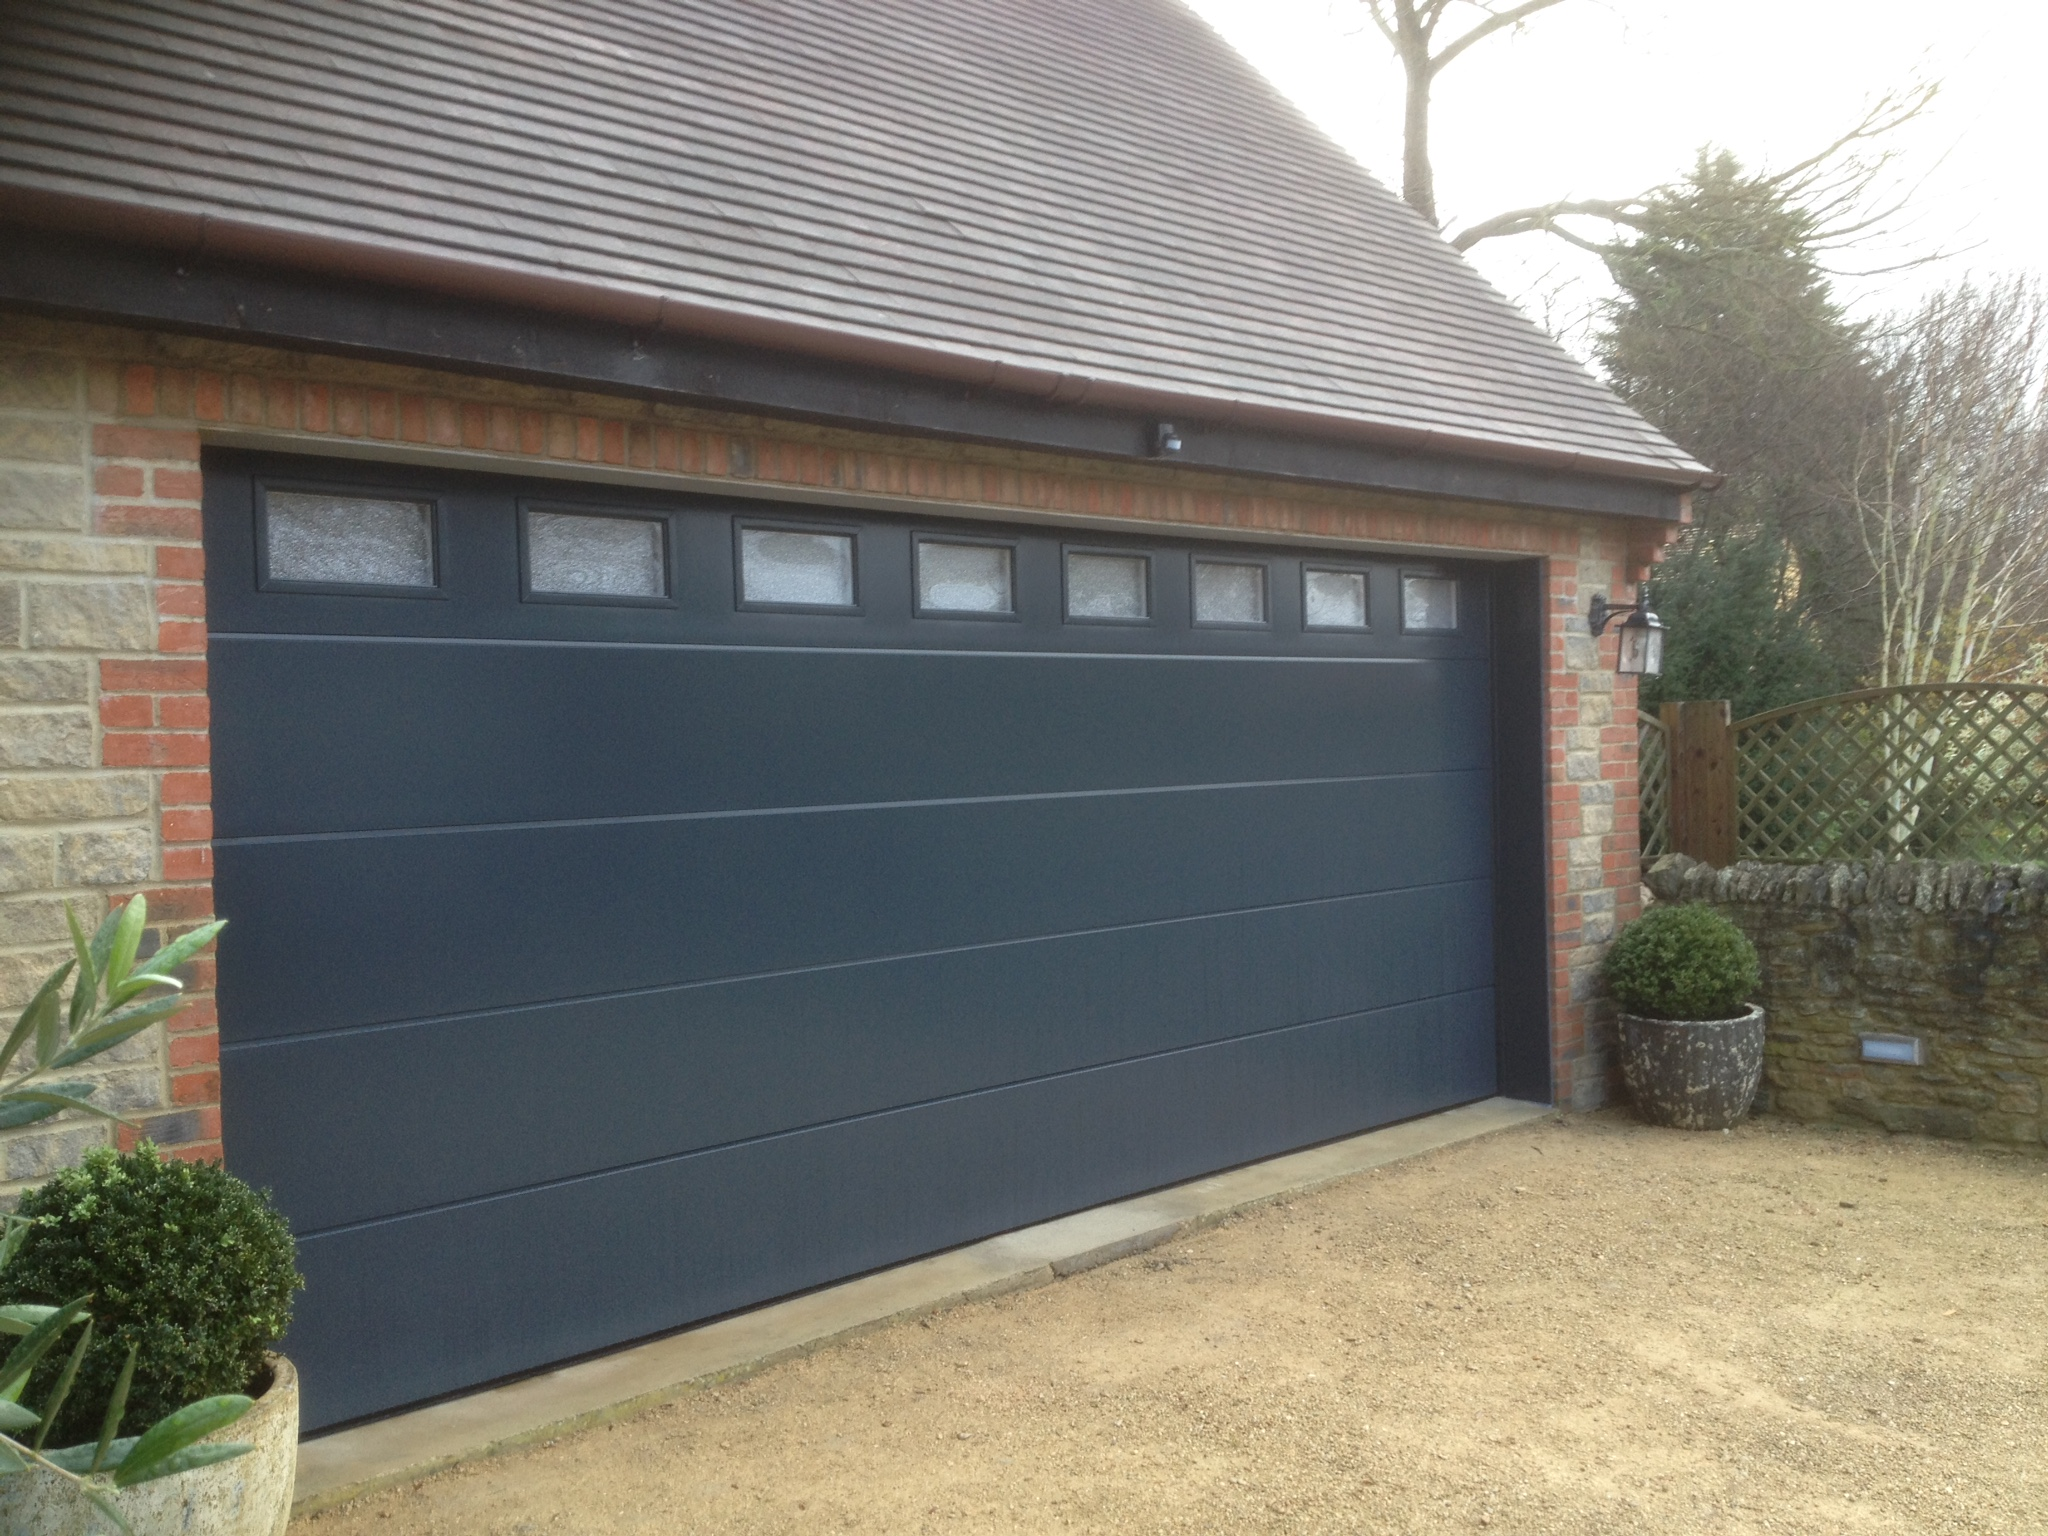 1536 #8A7441  Smooth Sectional With Windows Installed Near Bicester Oxfordshire picture/photo Garage Doors Near Me 37392048